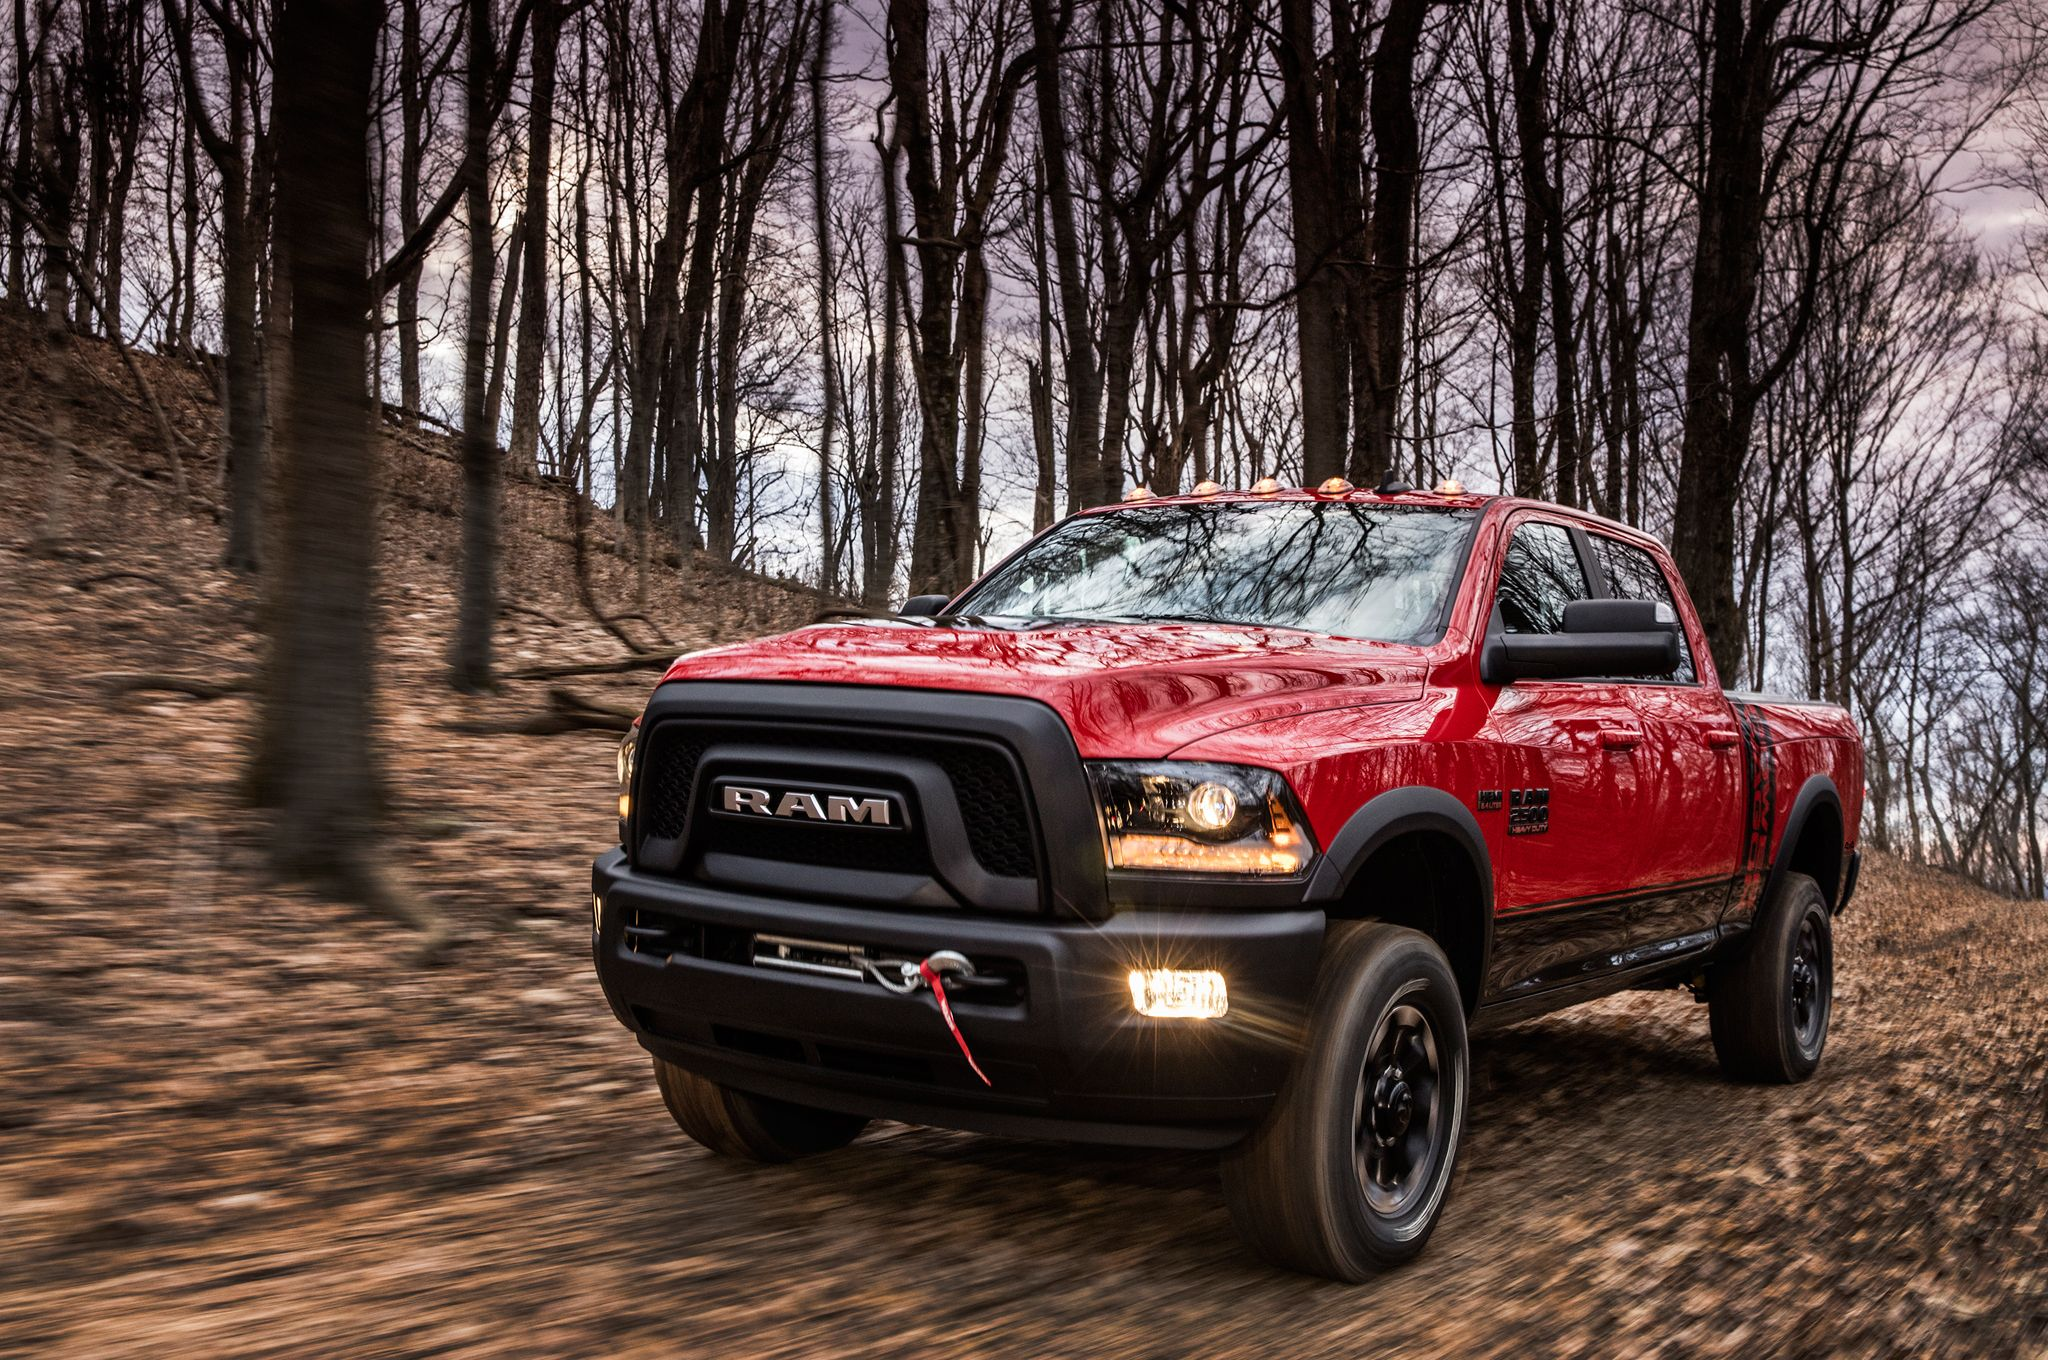 Putting the power in the 2017 ram 2500 power wagon 20 parts that turn a